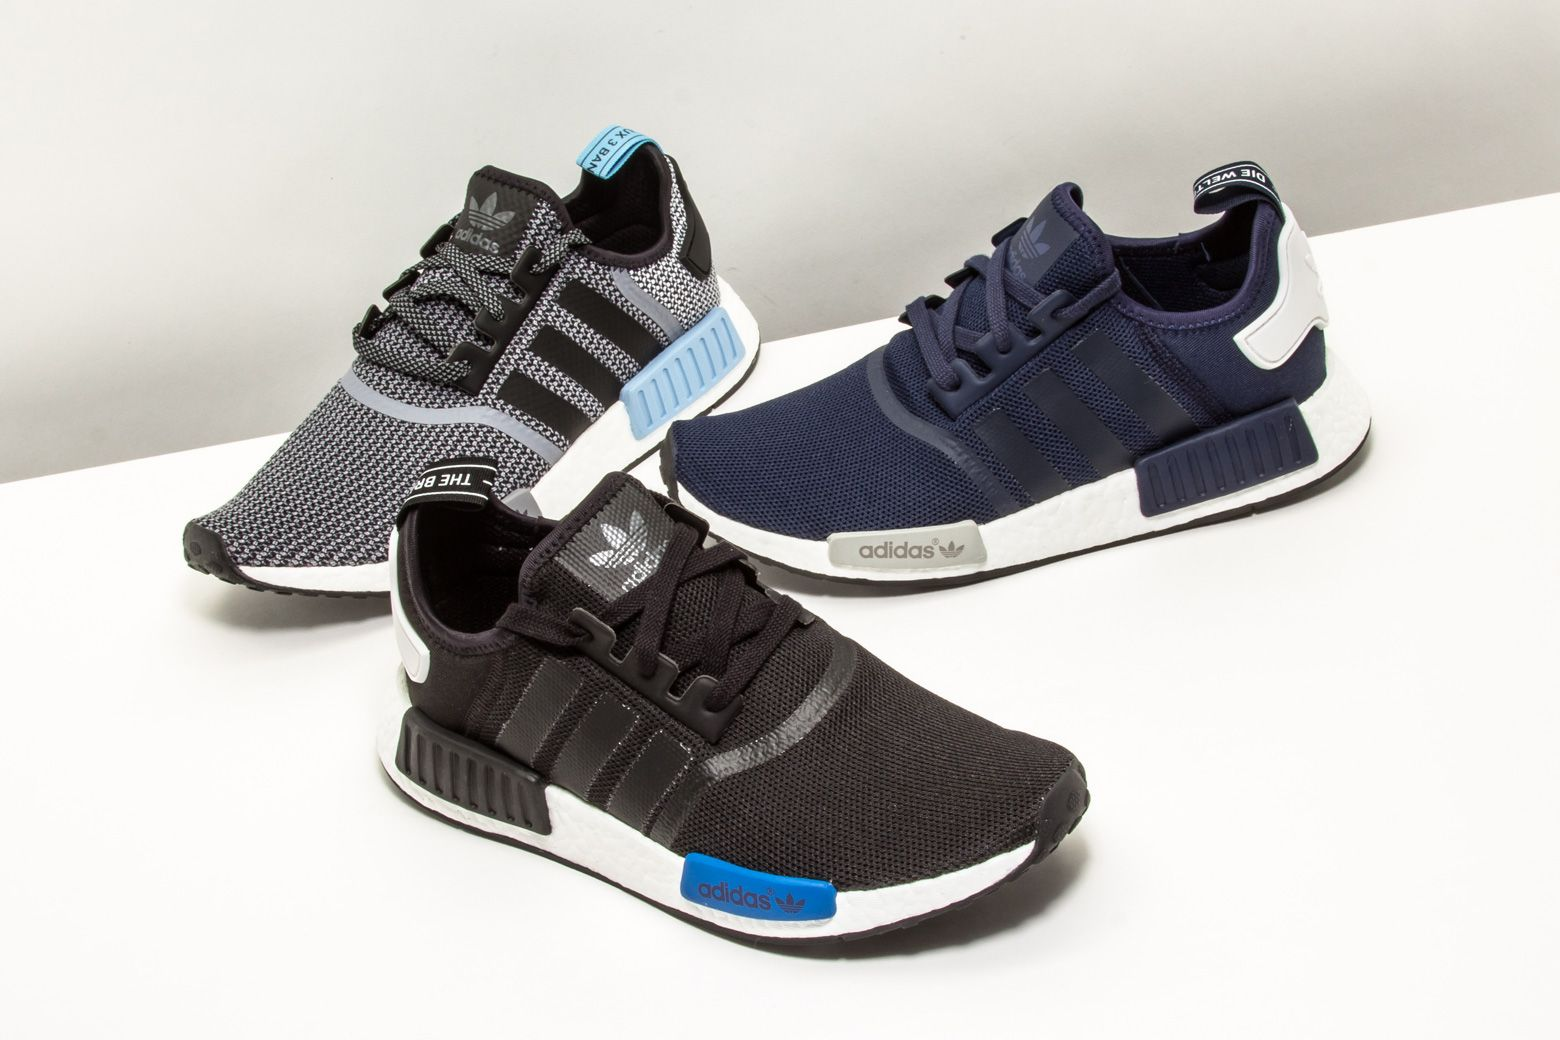 new product 7883c 9cf6f The adidas NMD shifted culture in ways unimaginable. Do you prefer the OG  versions or new colorways